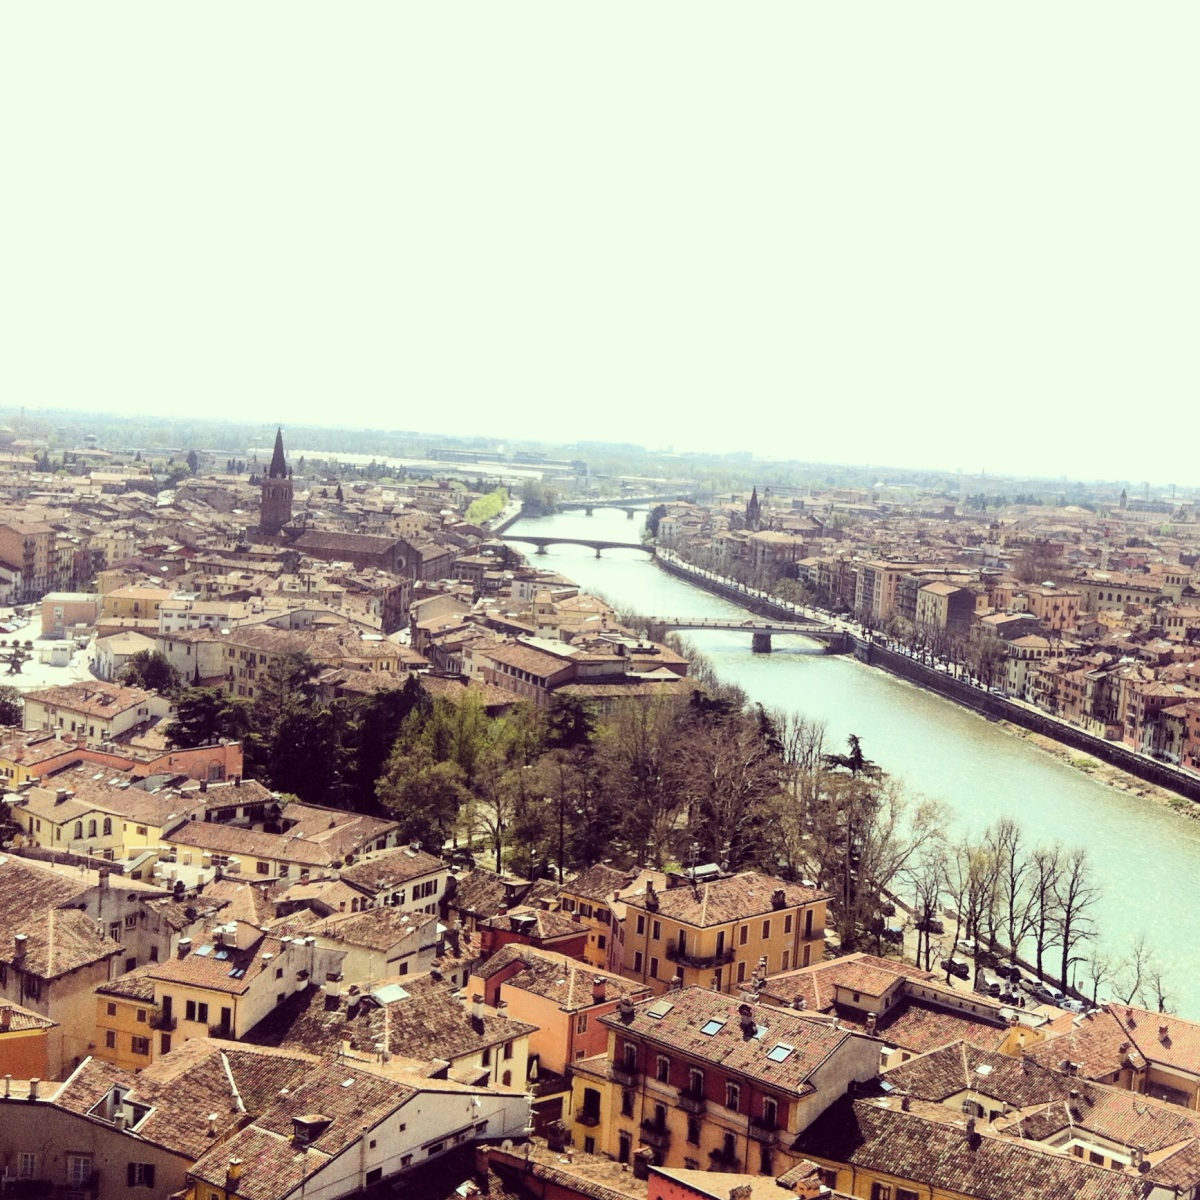 Verona: la ciudad más romántica de Italia / Verona: the most romantic city in Italy